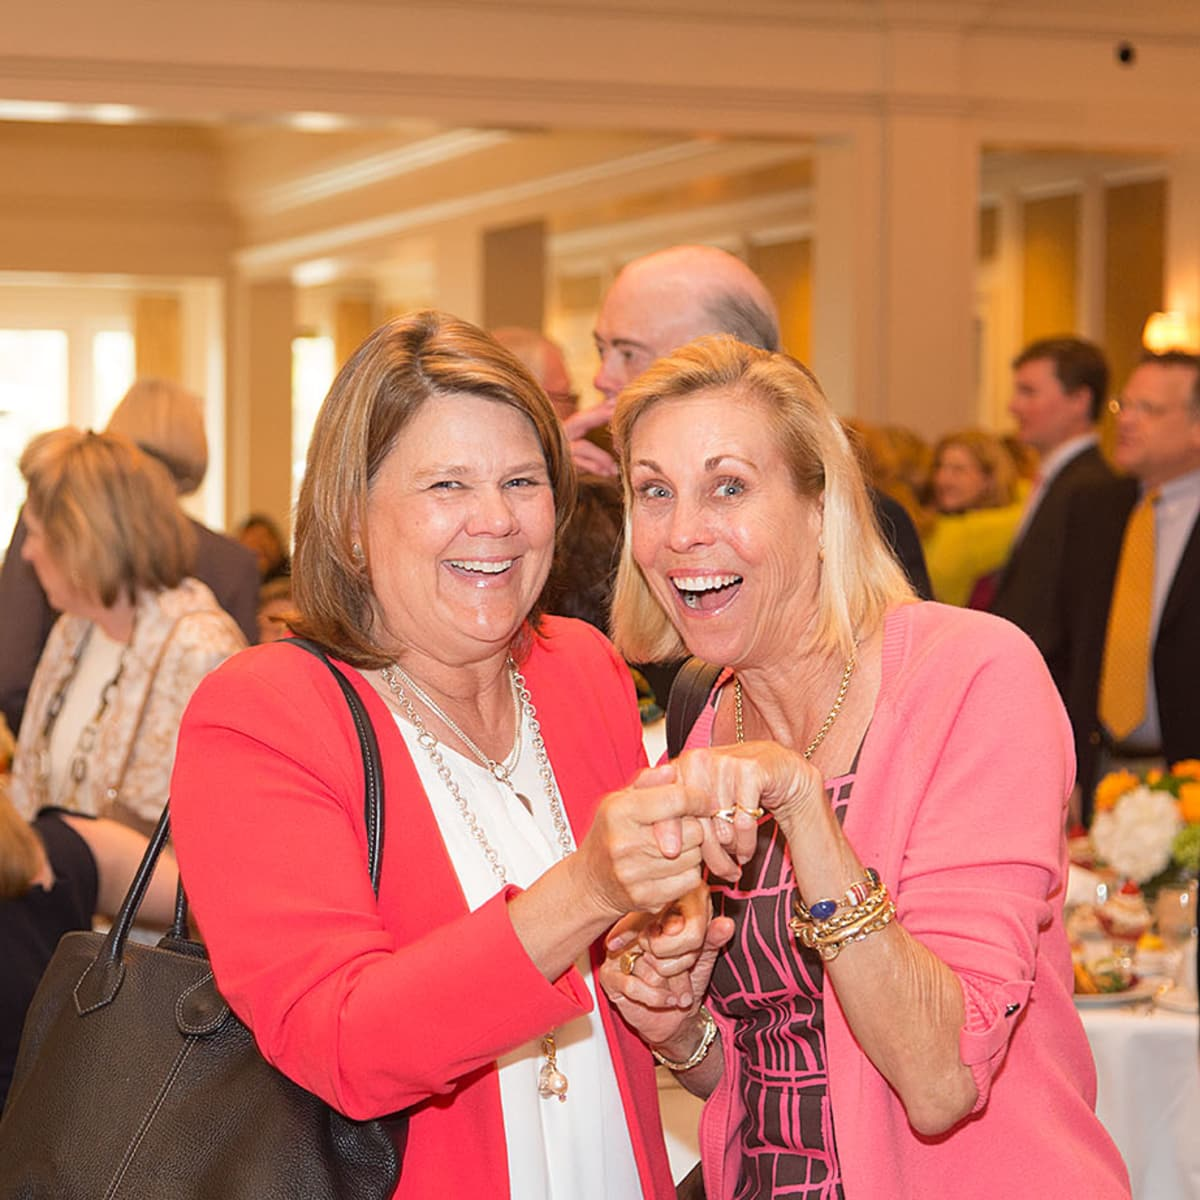 VEPS Luncheon, March 2016, Phoebe Muzzy, Cindy Kahle